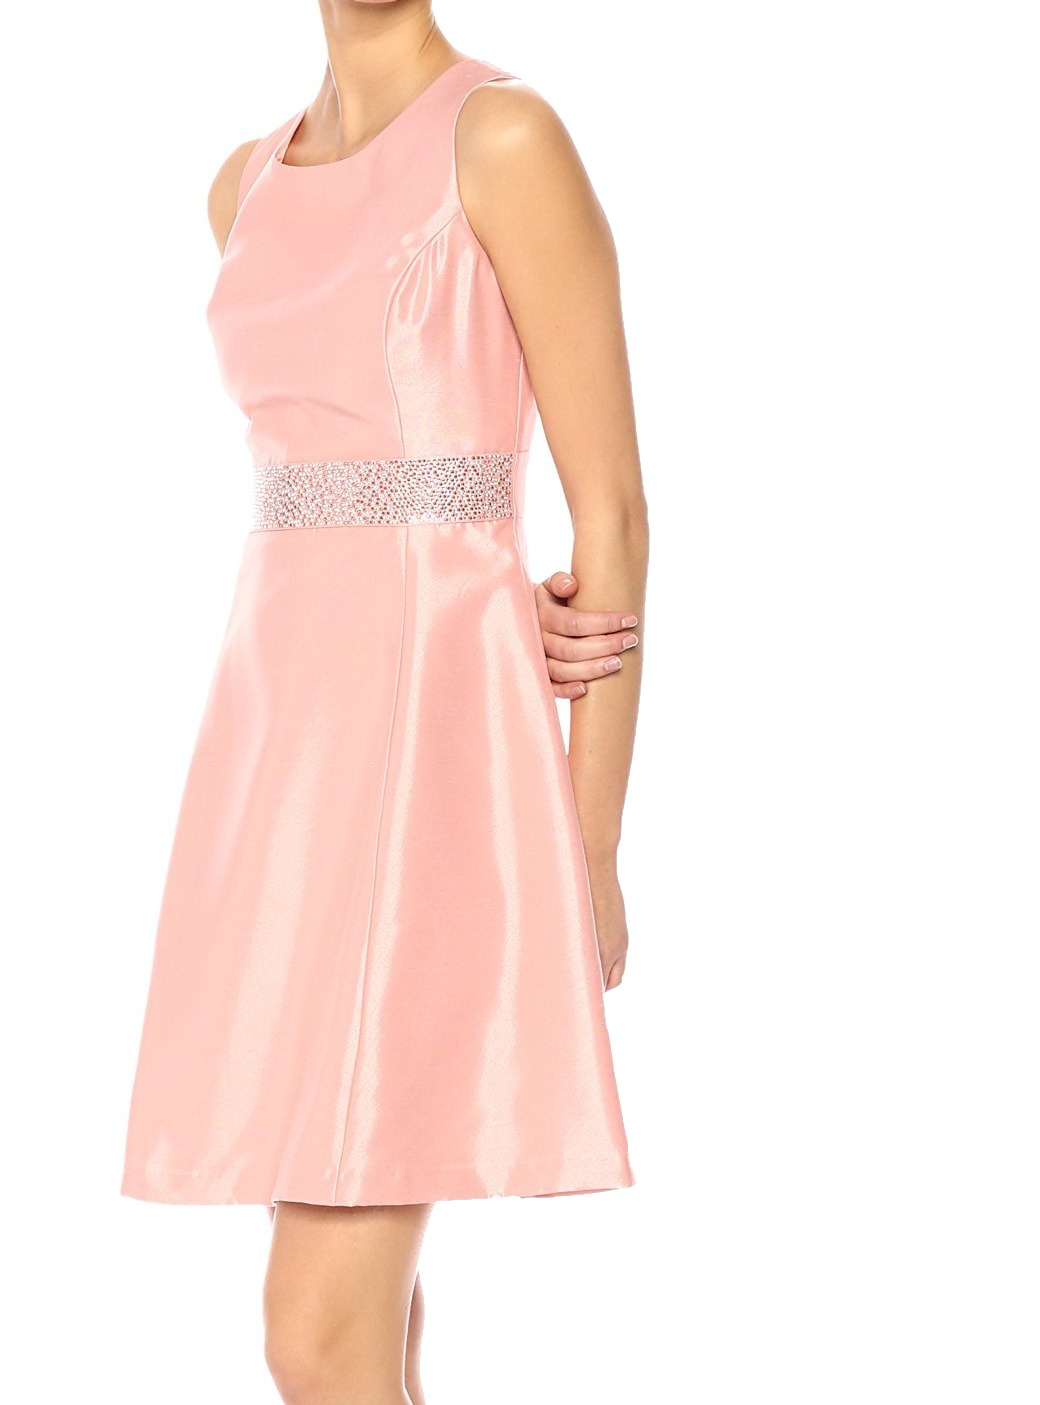 76801a14cc1d9 Details about Nine West NEW Pink Women s Size 6 Embellished Waist A-Line  Dress  89-  119